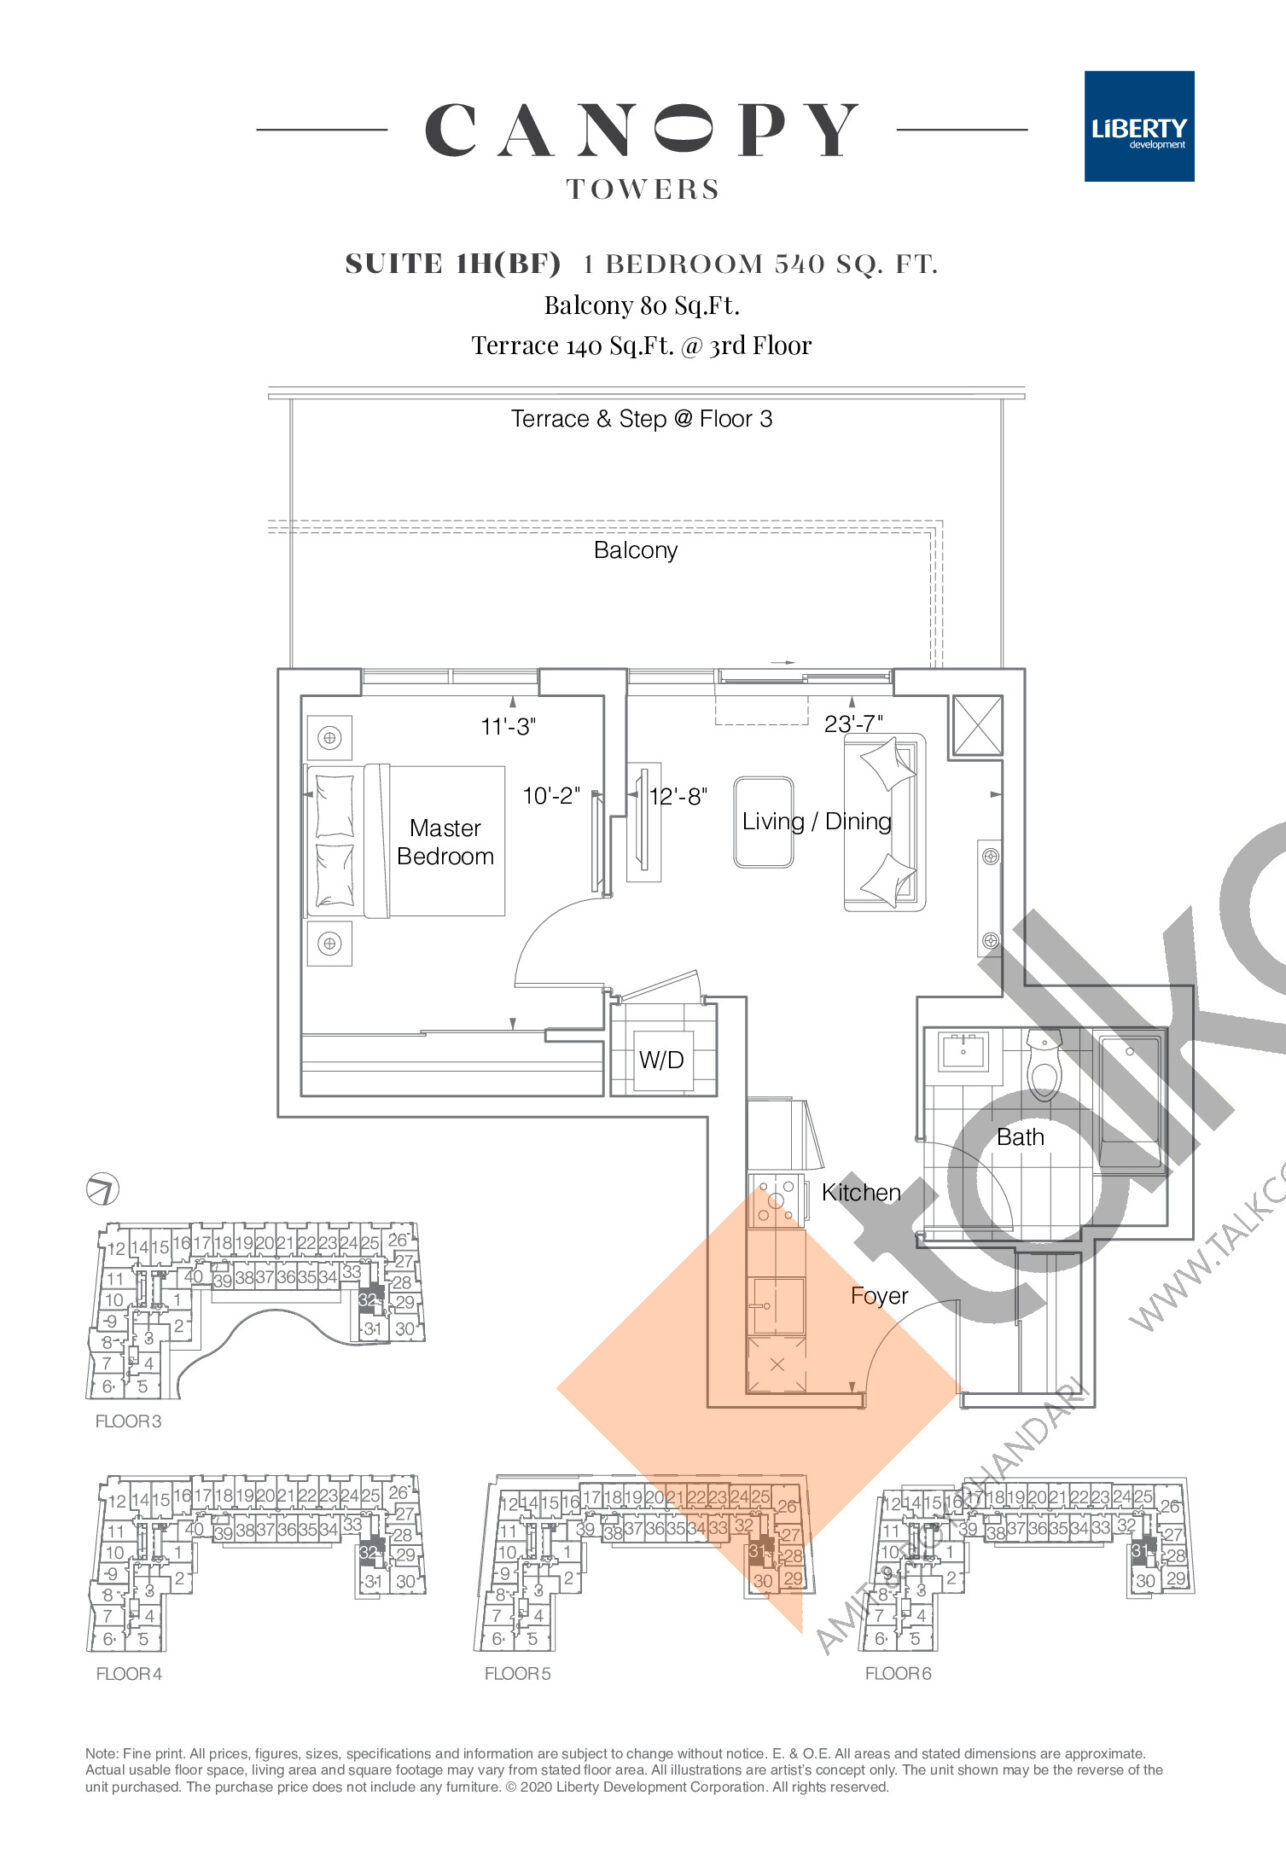 Suite 1H(BF) Floor Plan at Canopy Towers Condos - 540 sq.ft